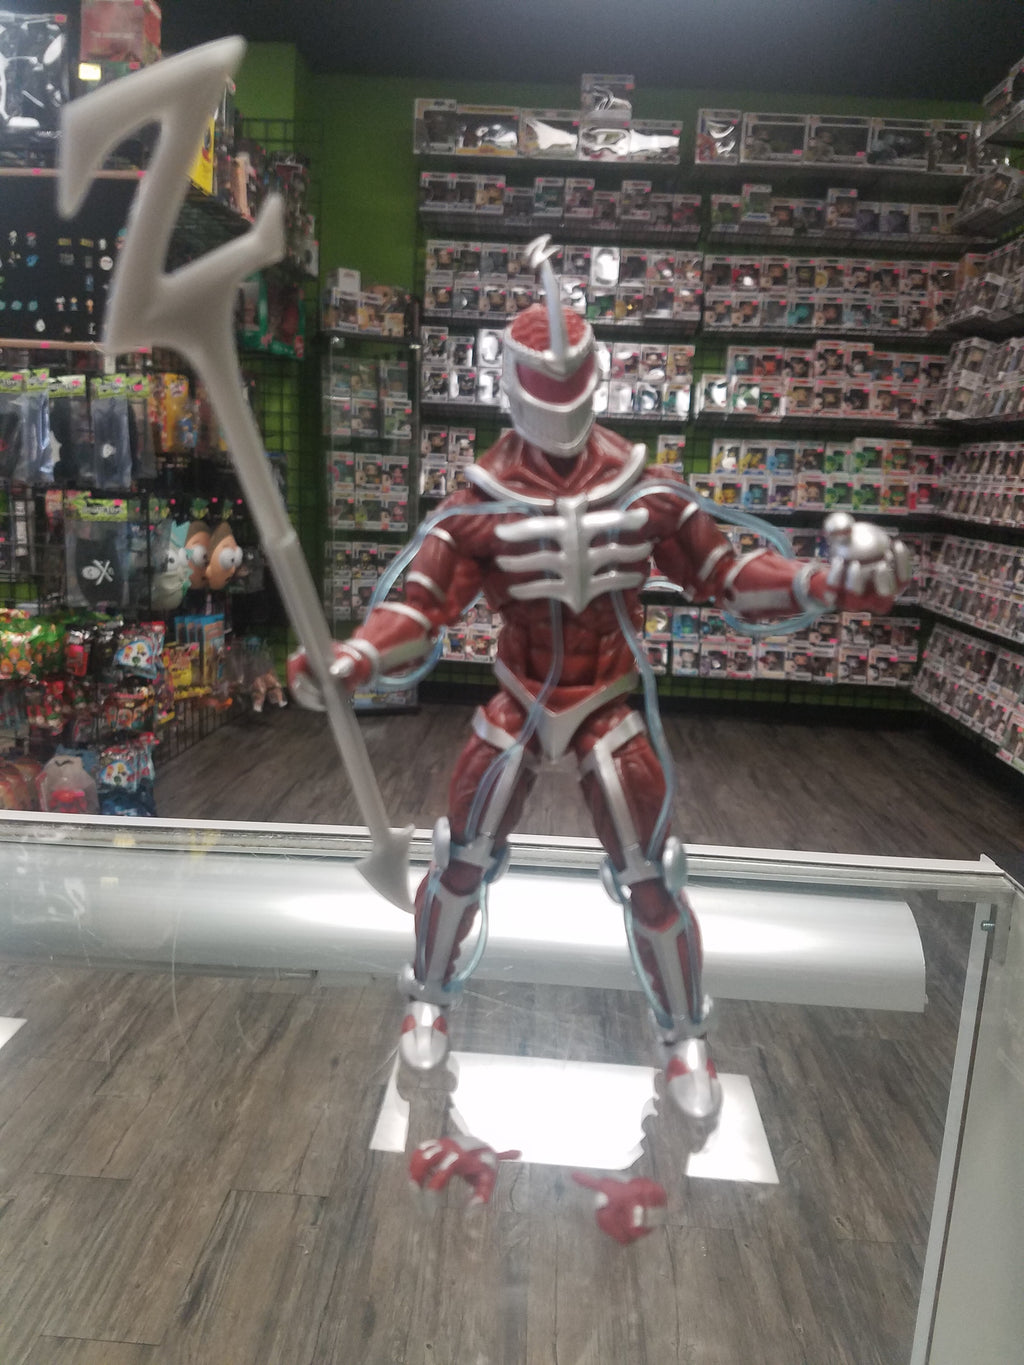 HASBRO Lightning Collection Mighty Morphin Power Rangers Lord Zed (Gamestop Exclusive Rita Repulsa two-pack version)